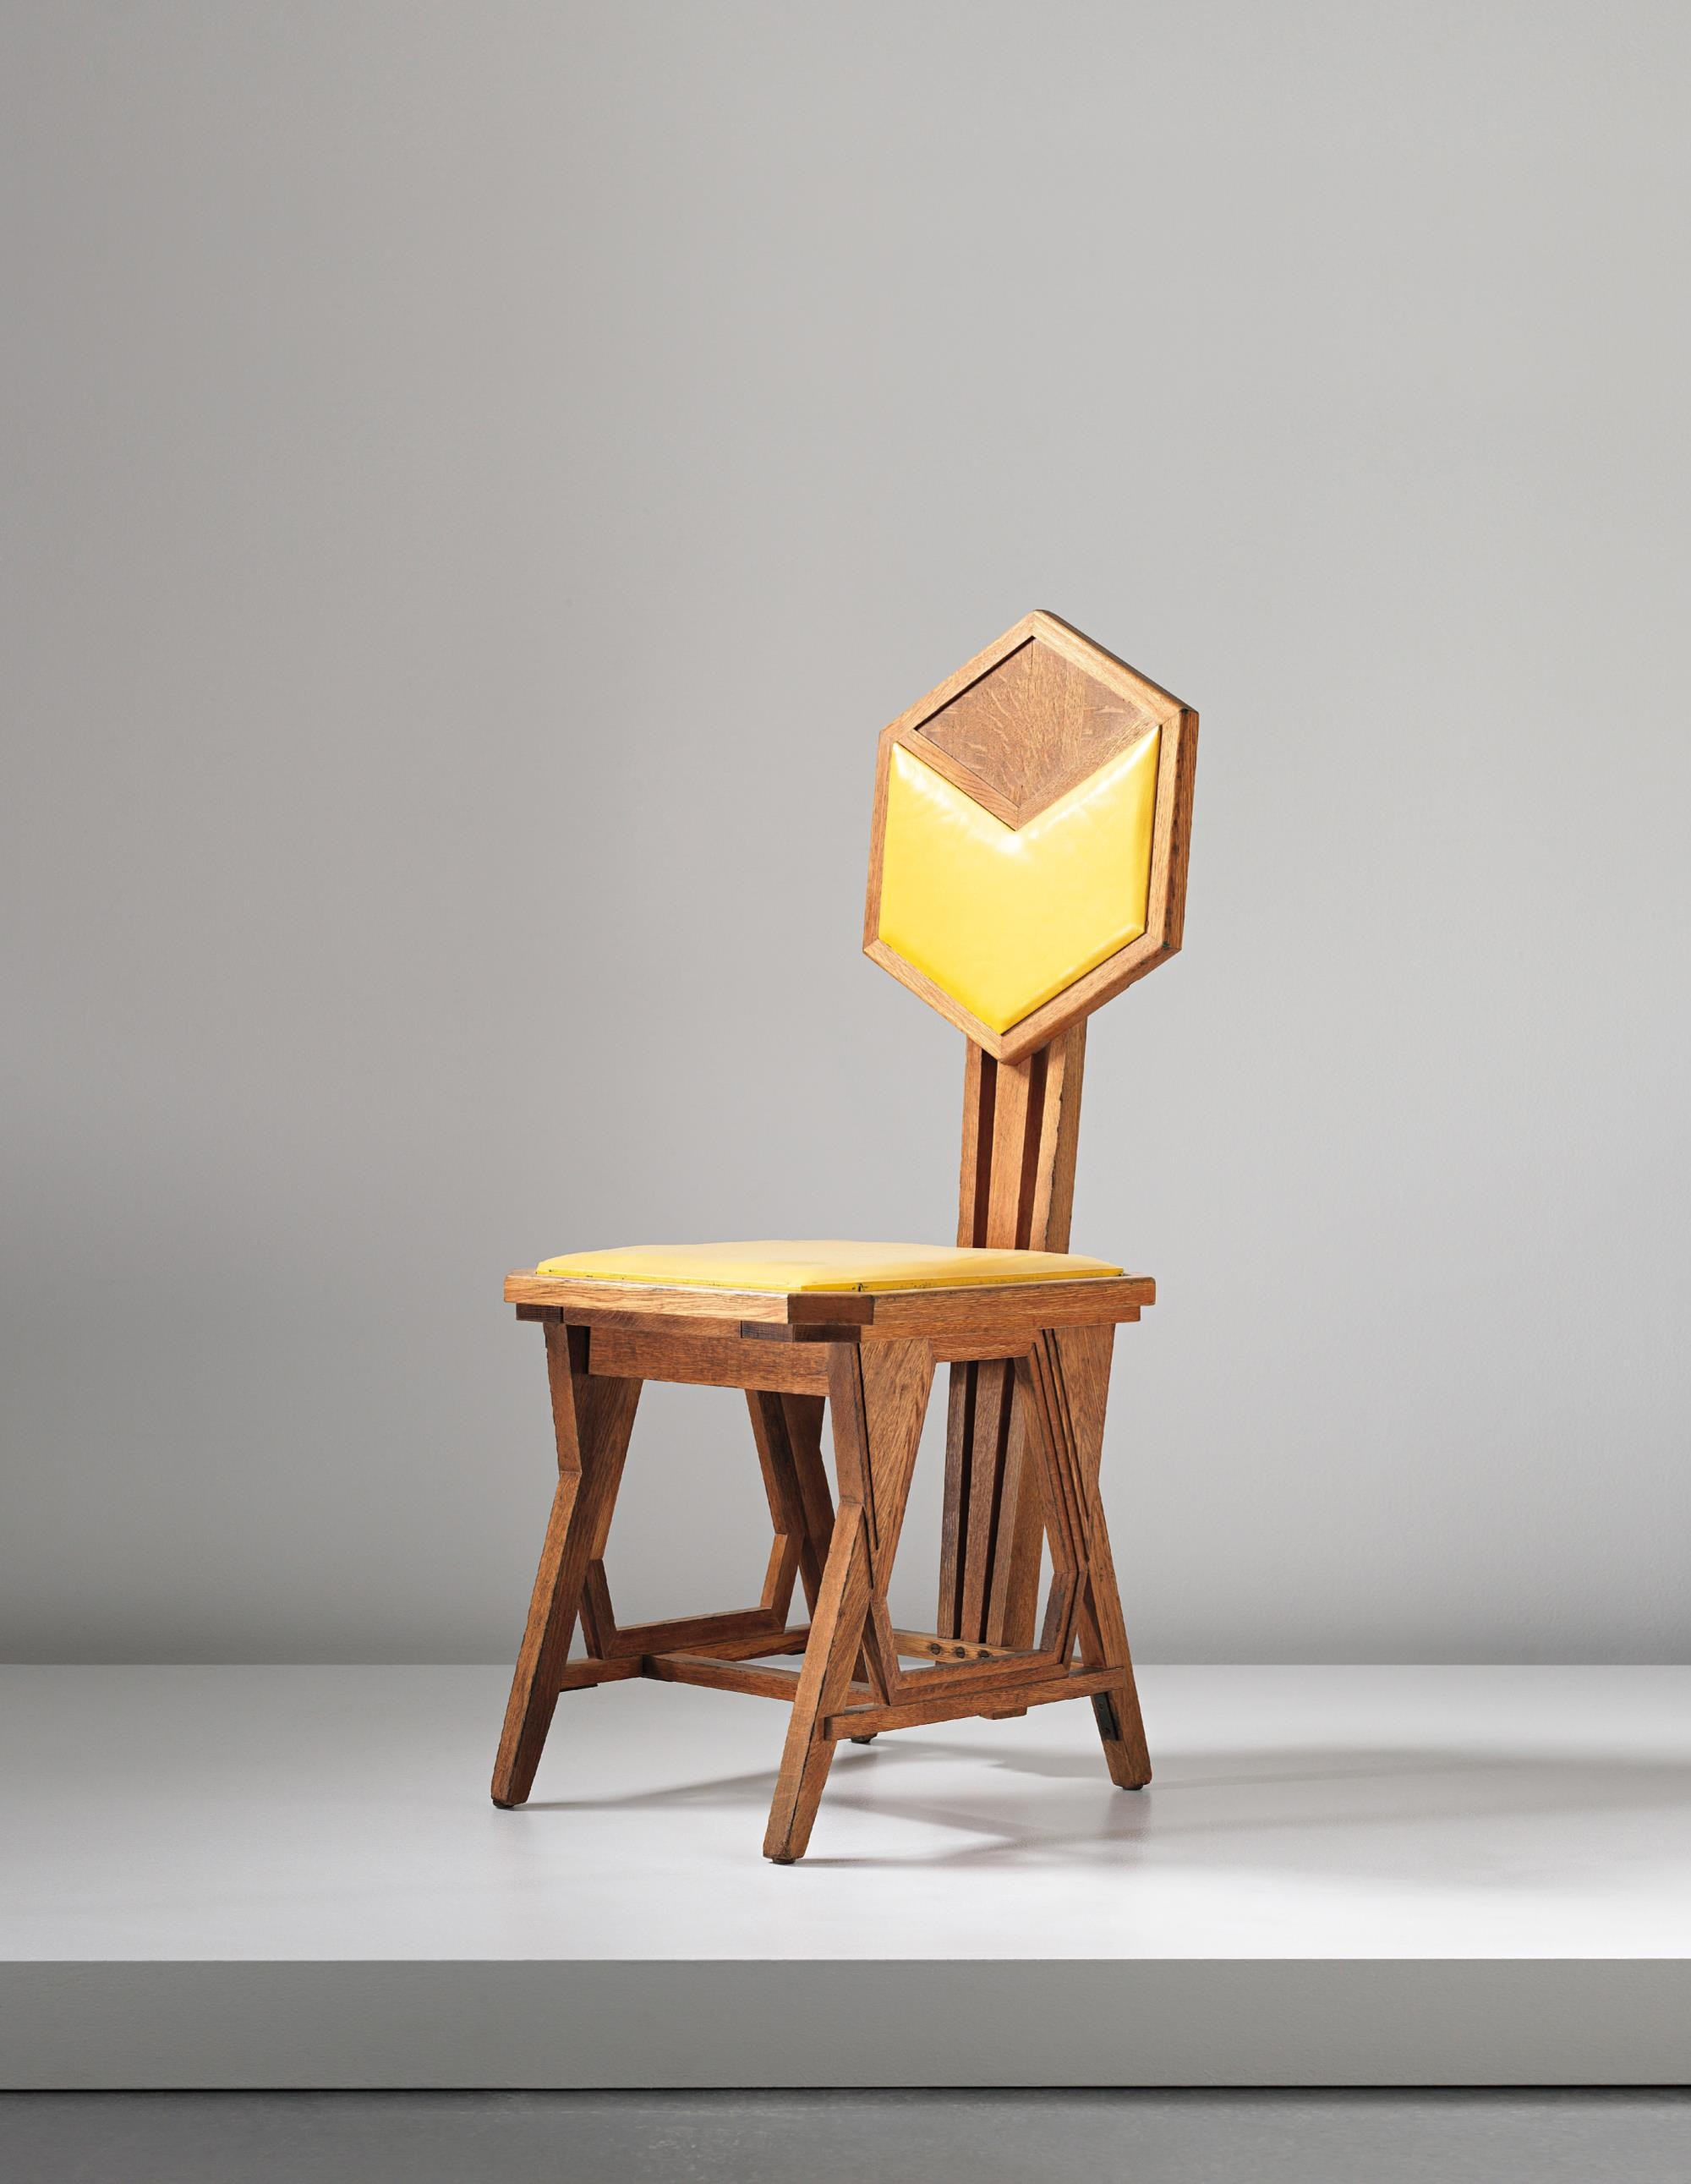 100 Design Relics From Niemeyer, Le Corbusier, FLW And More,Frank